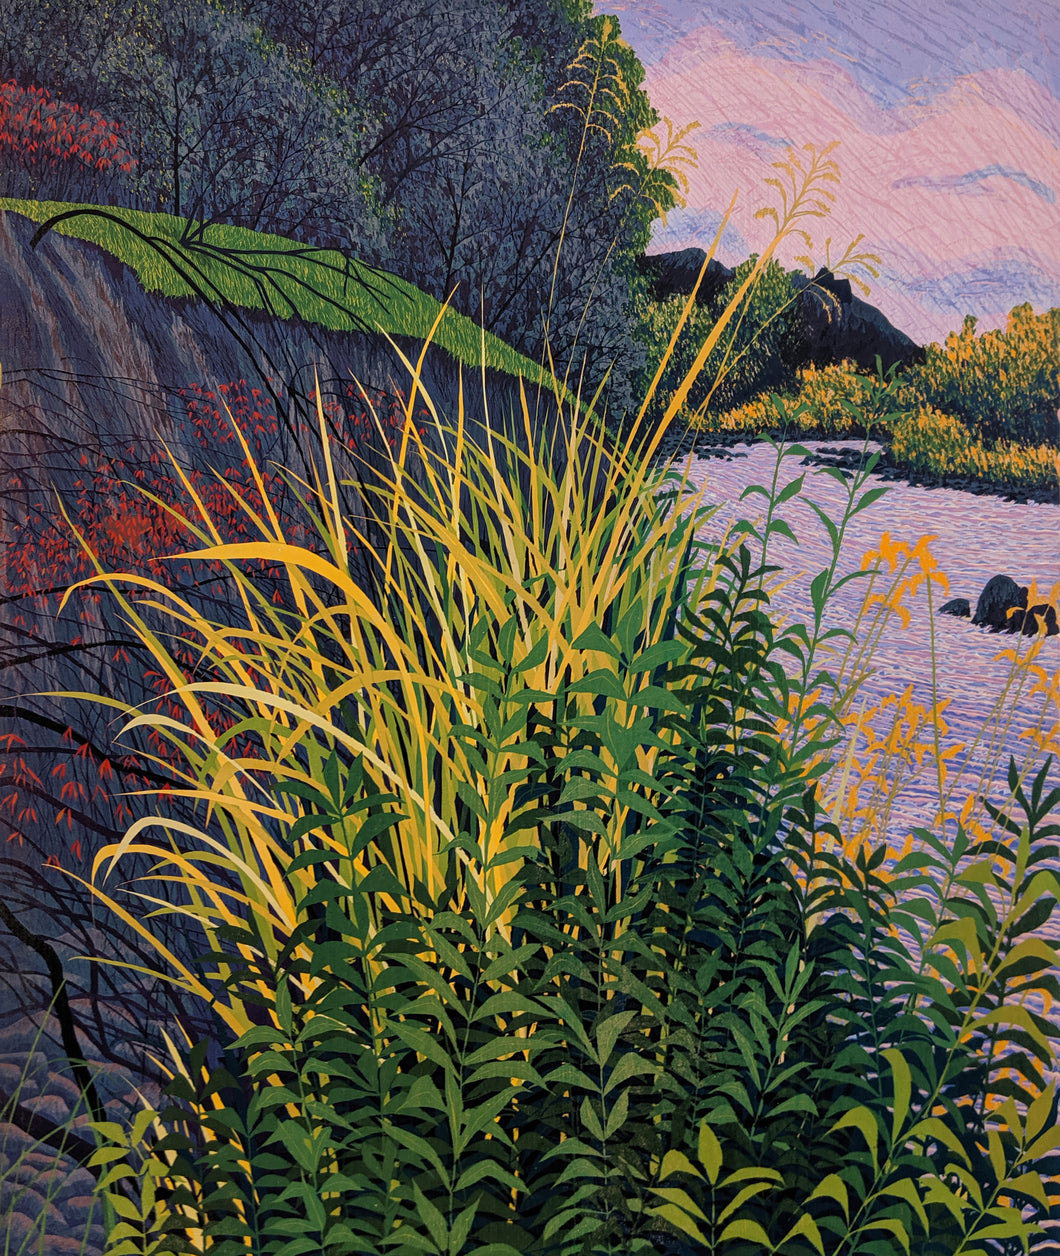 Tonto Creek - Reduction Woodcut Print on Paper by Gordon Mortensen